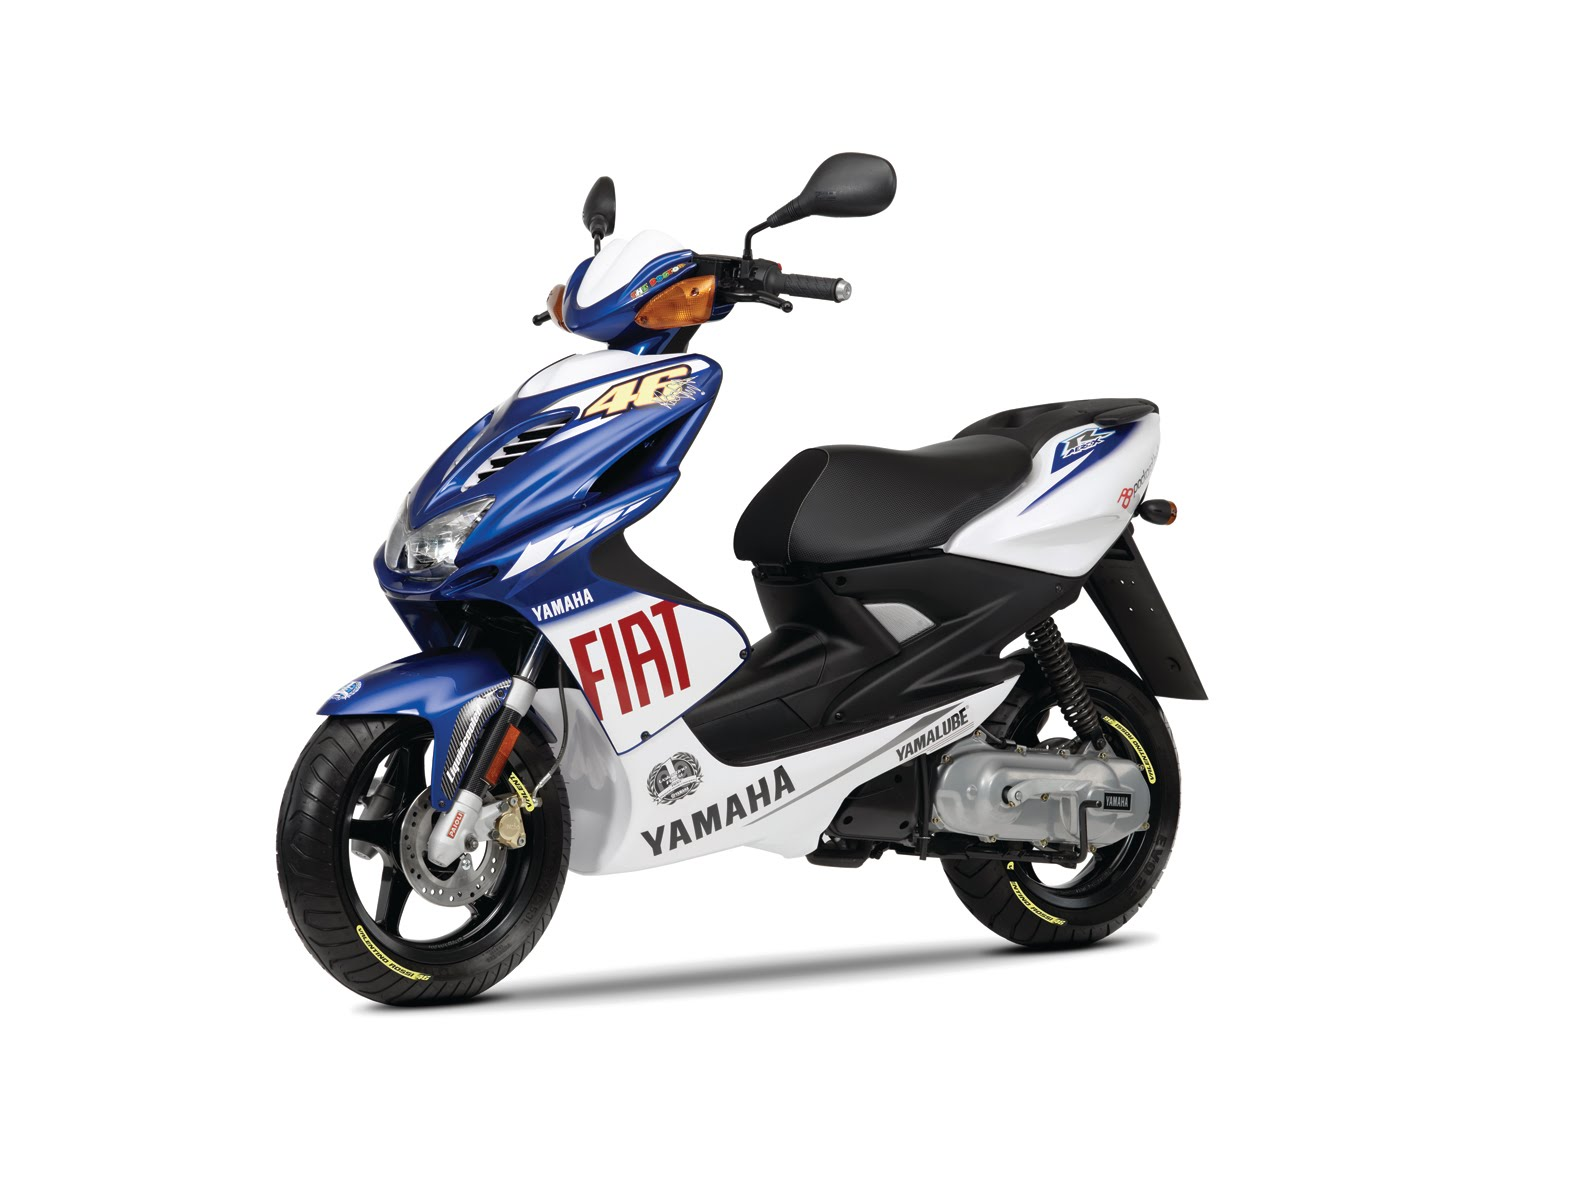 Yamaha Motogp New Motorcycles Wiring Diagram Aerox Rossi Scooter Arrives